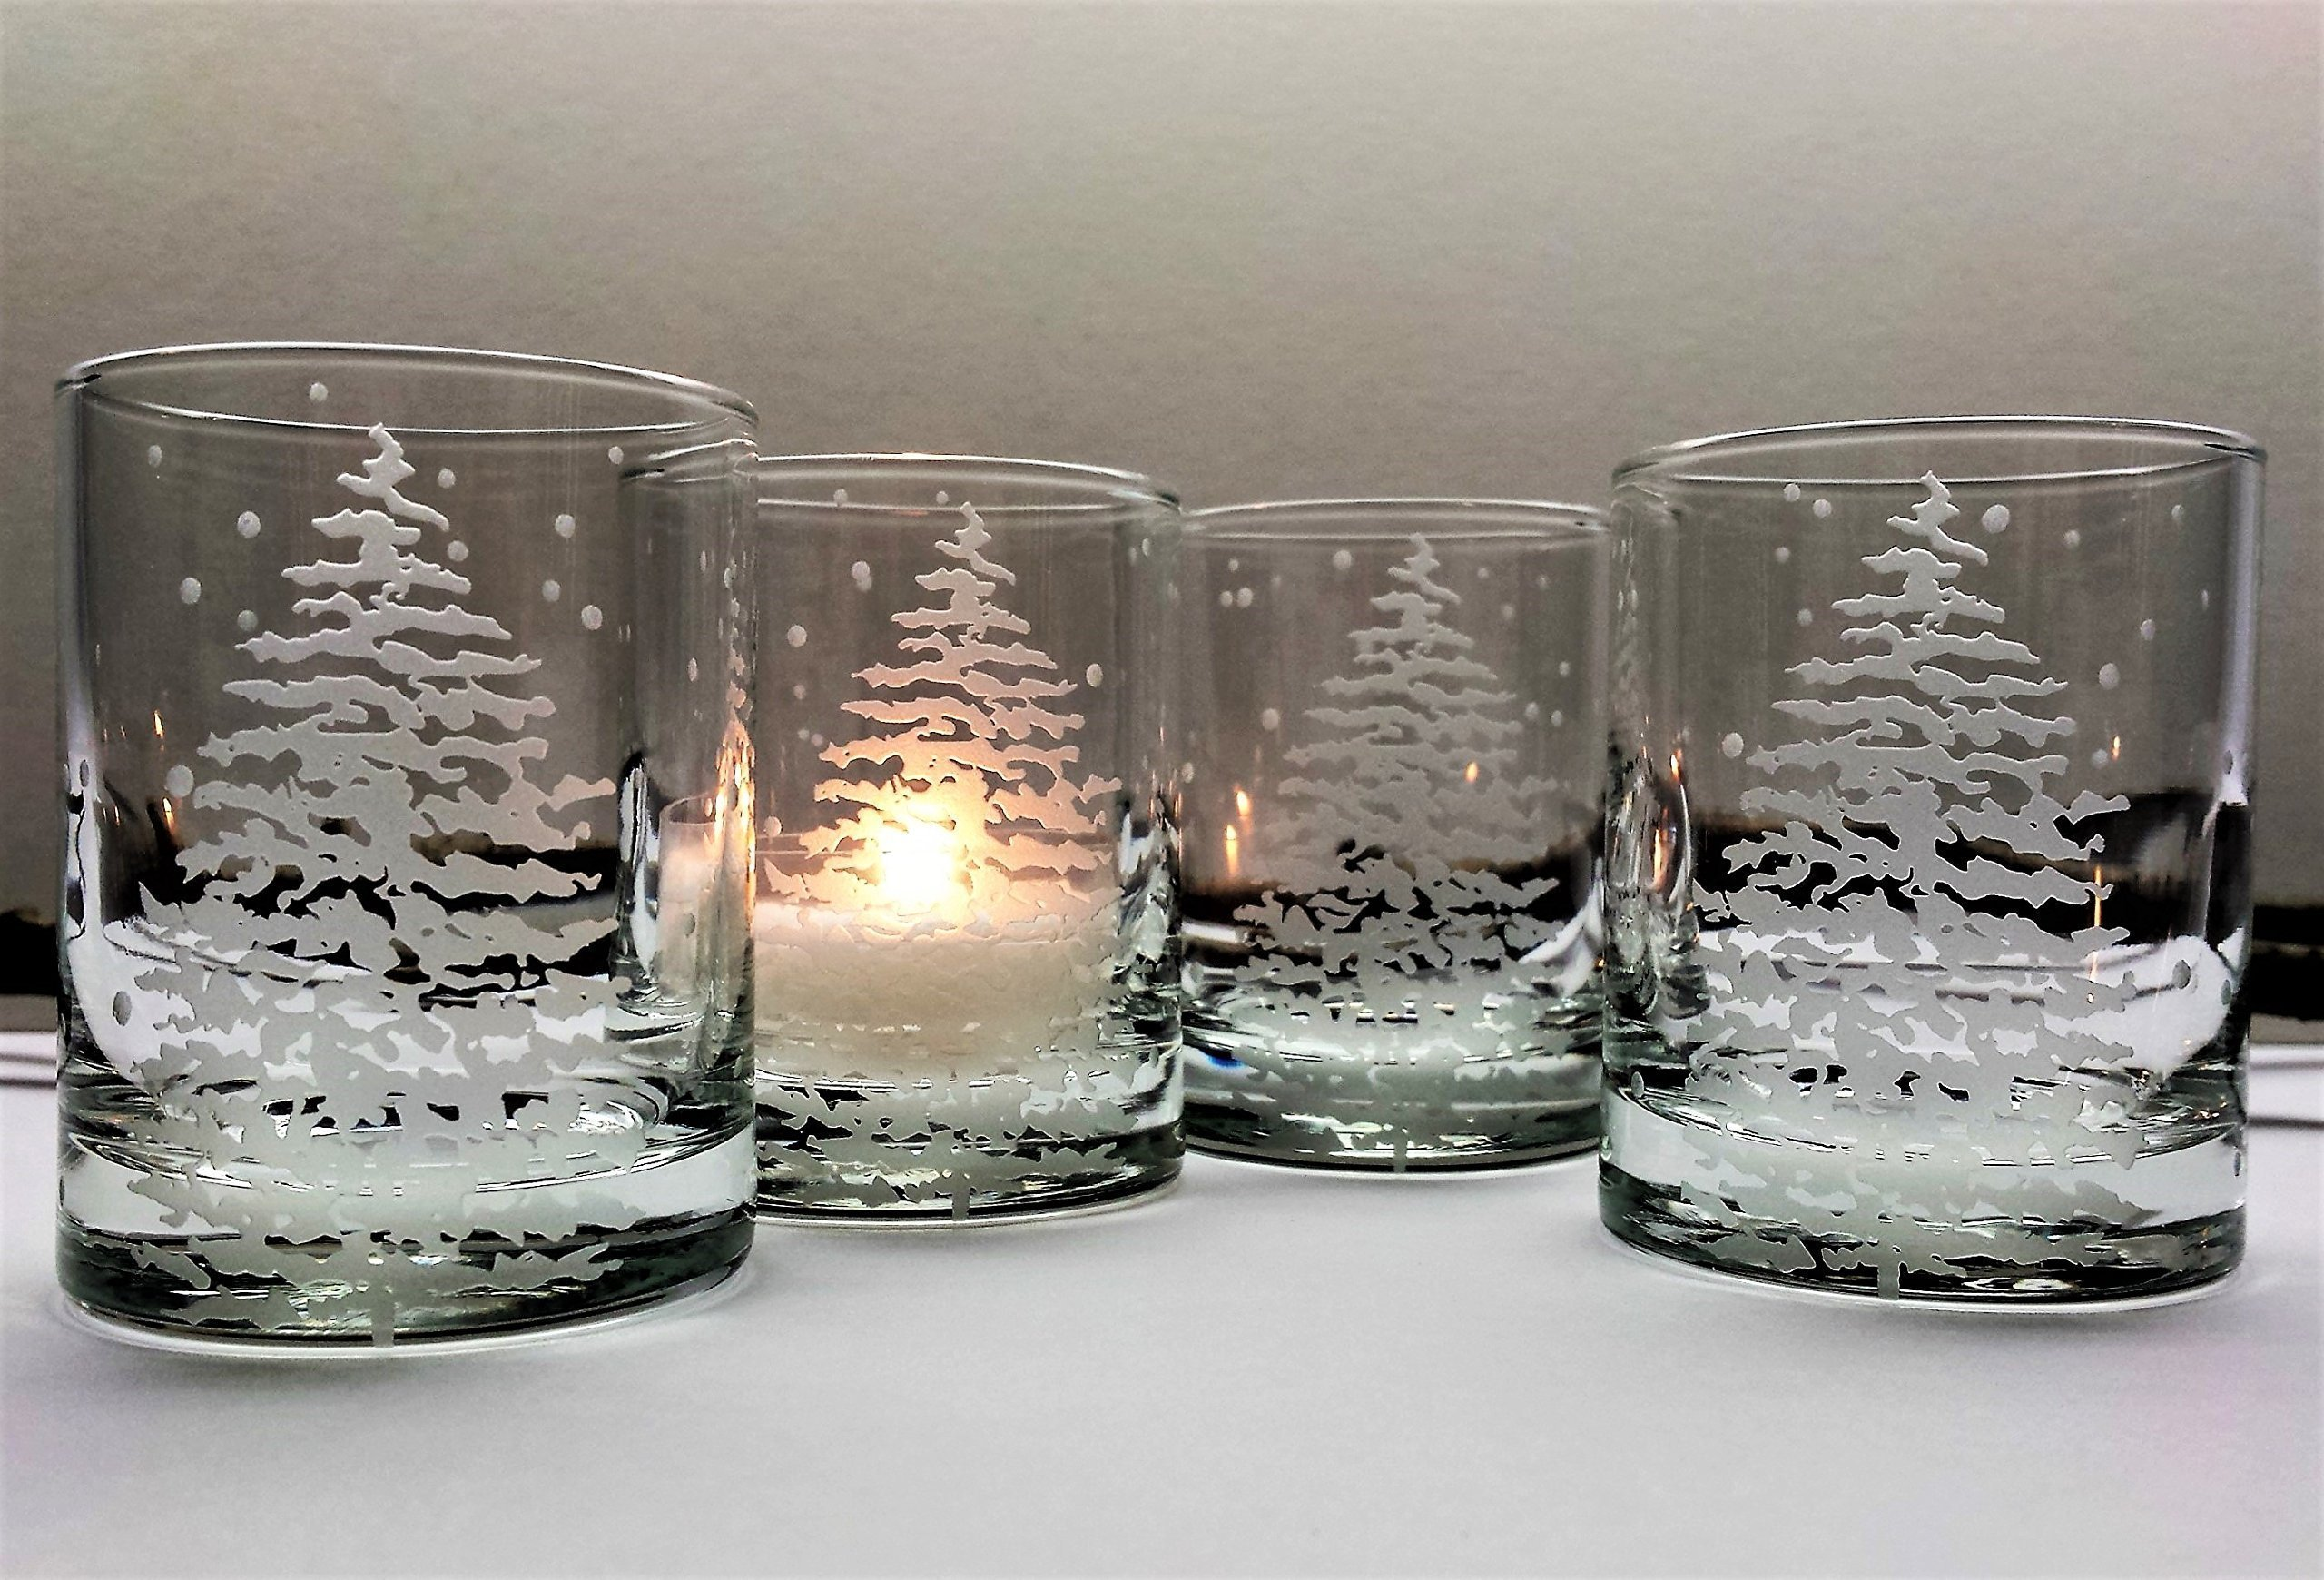 Get Quotations Fir Tree And Floating Flakes Votive Holder Set Of Four Engraved Gl Candle Holders Winter Decor